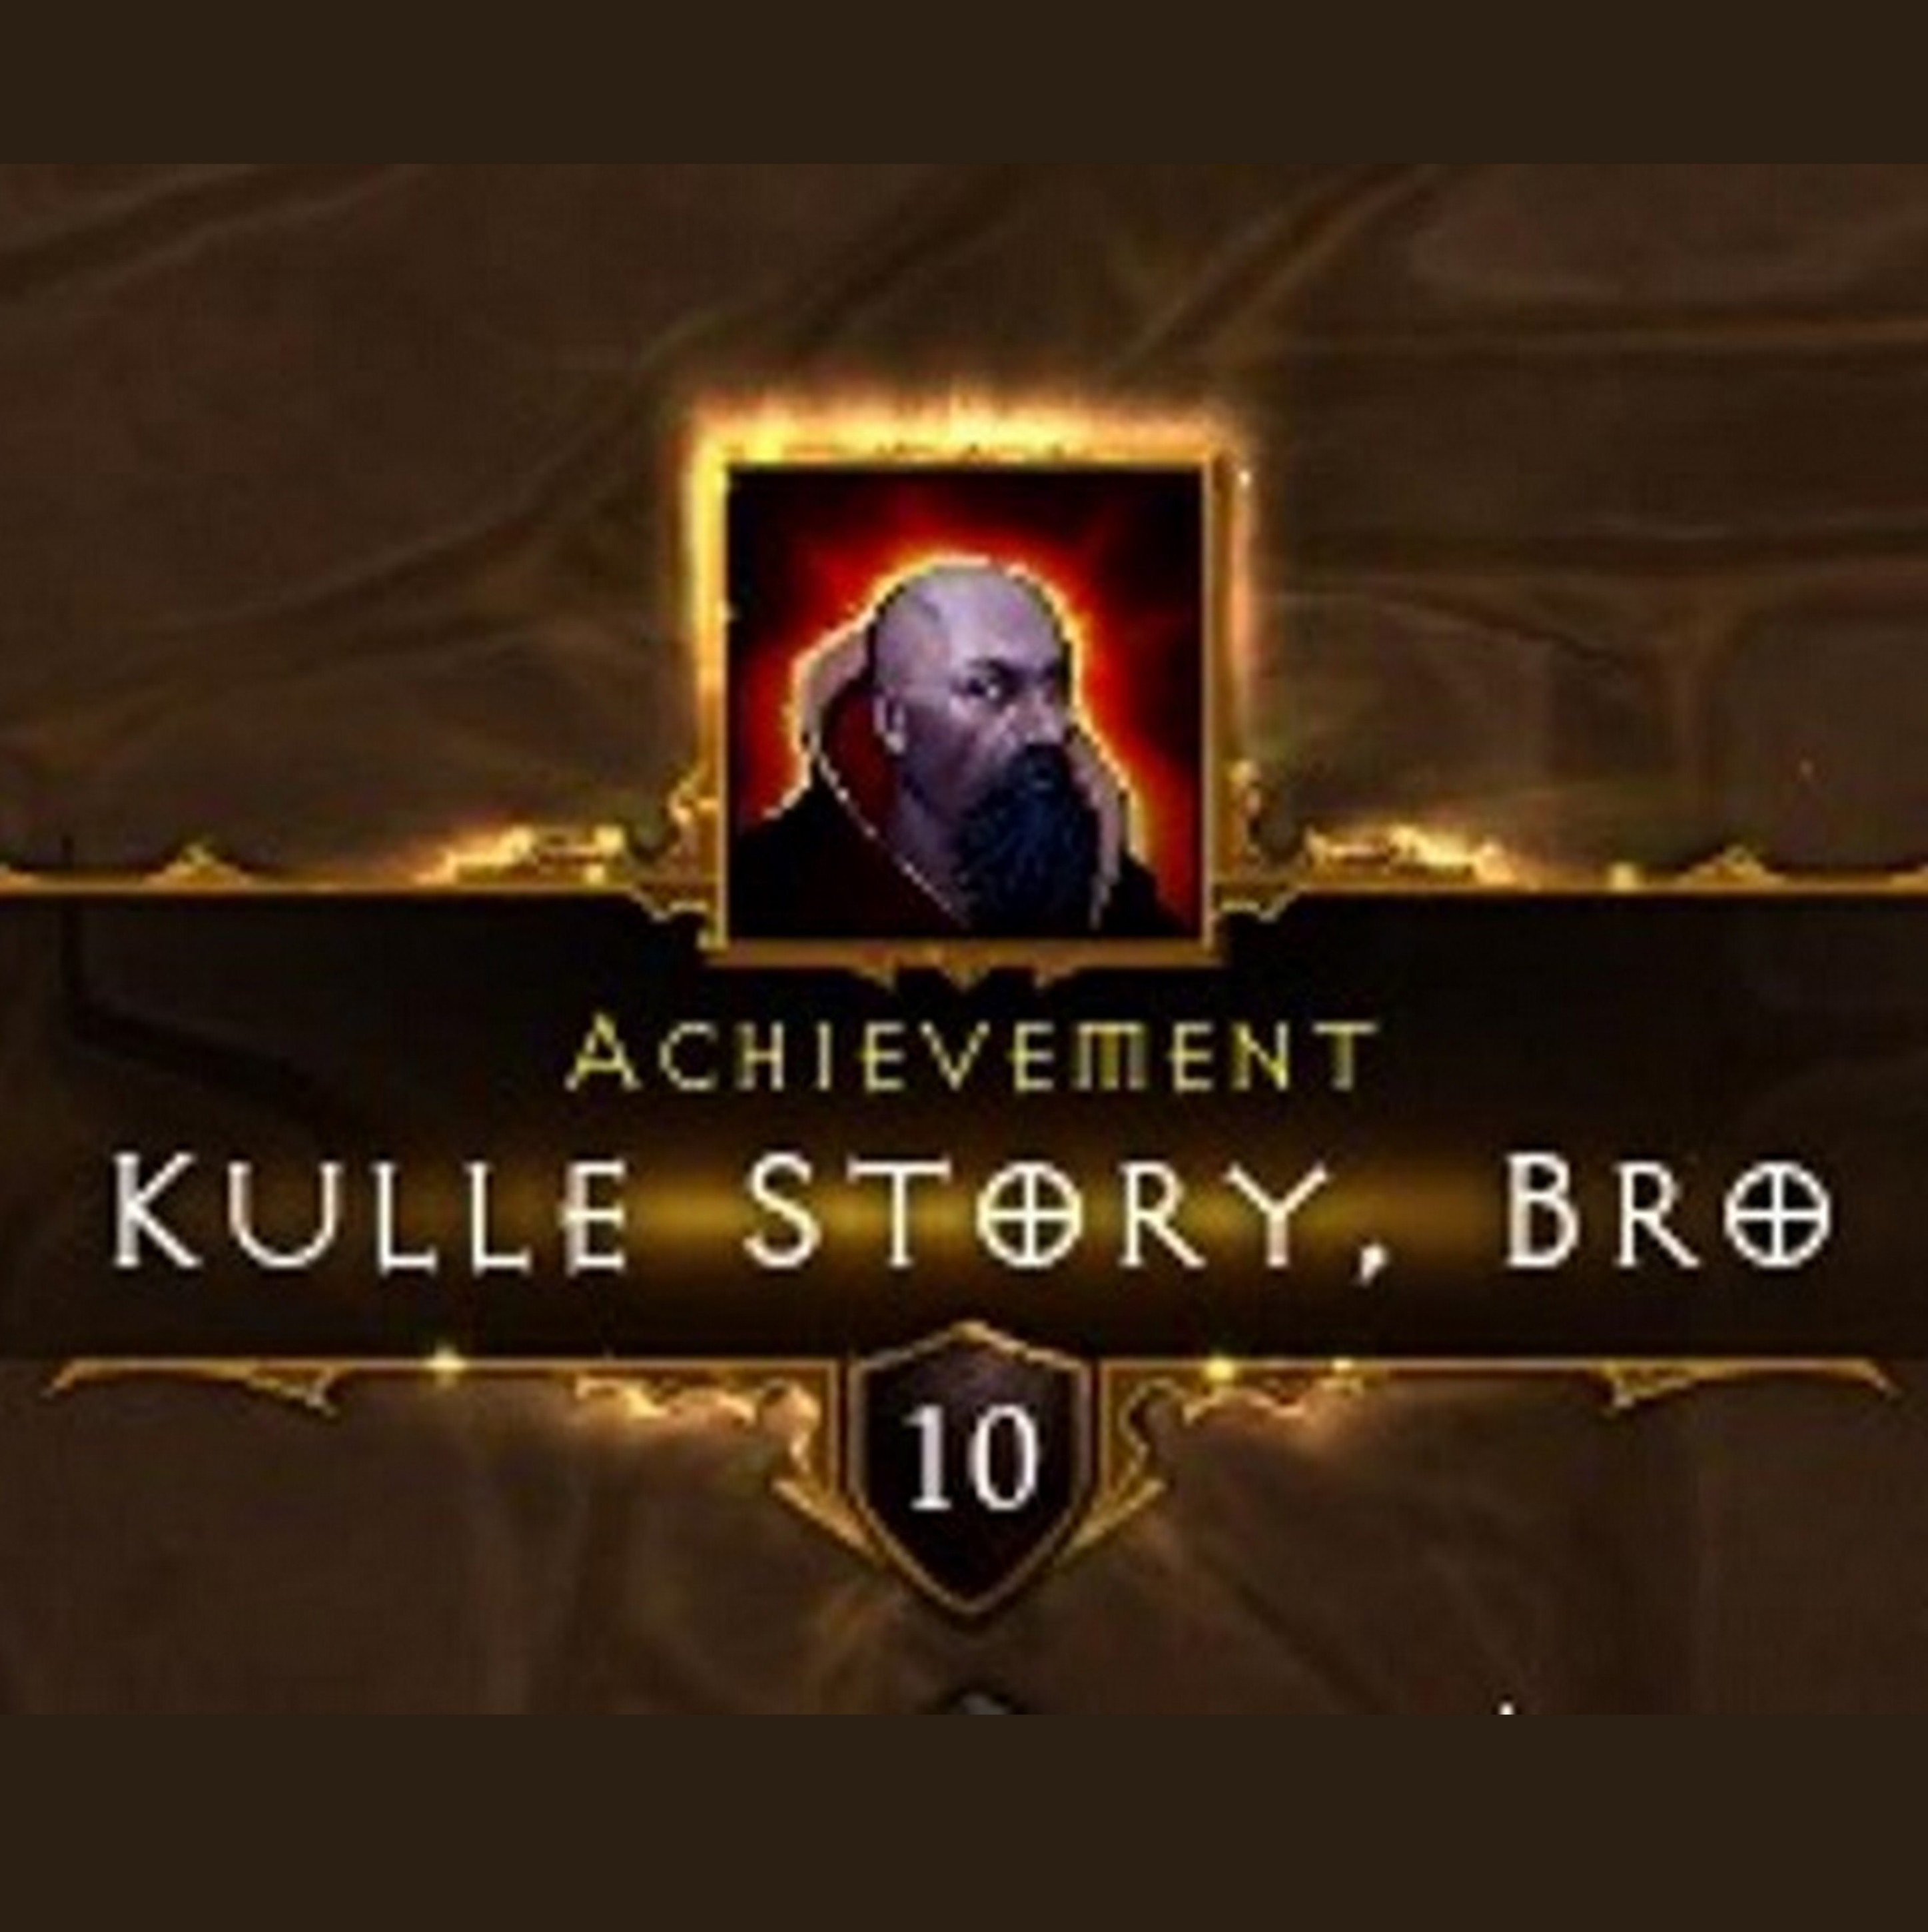 Kulle Story Bro - A Diablo 3 Podcast Episode 13